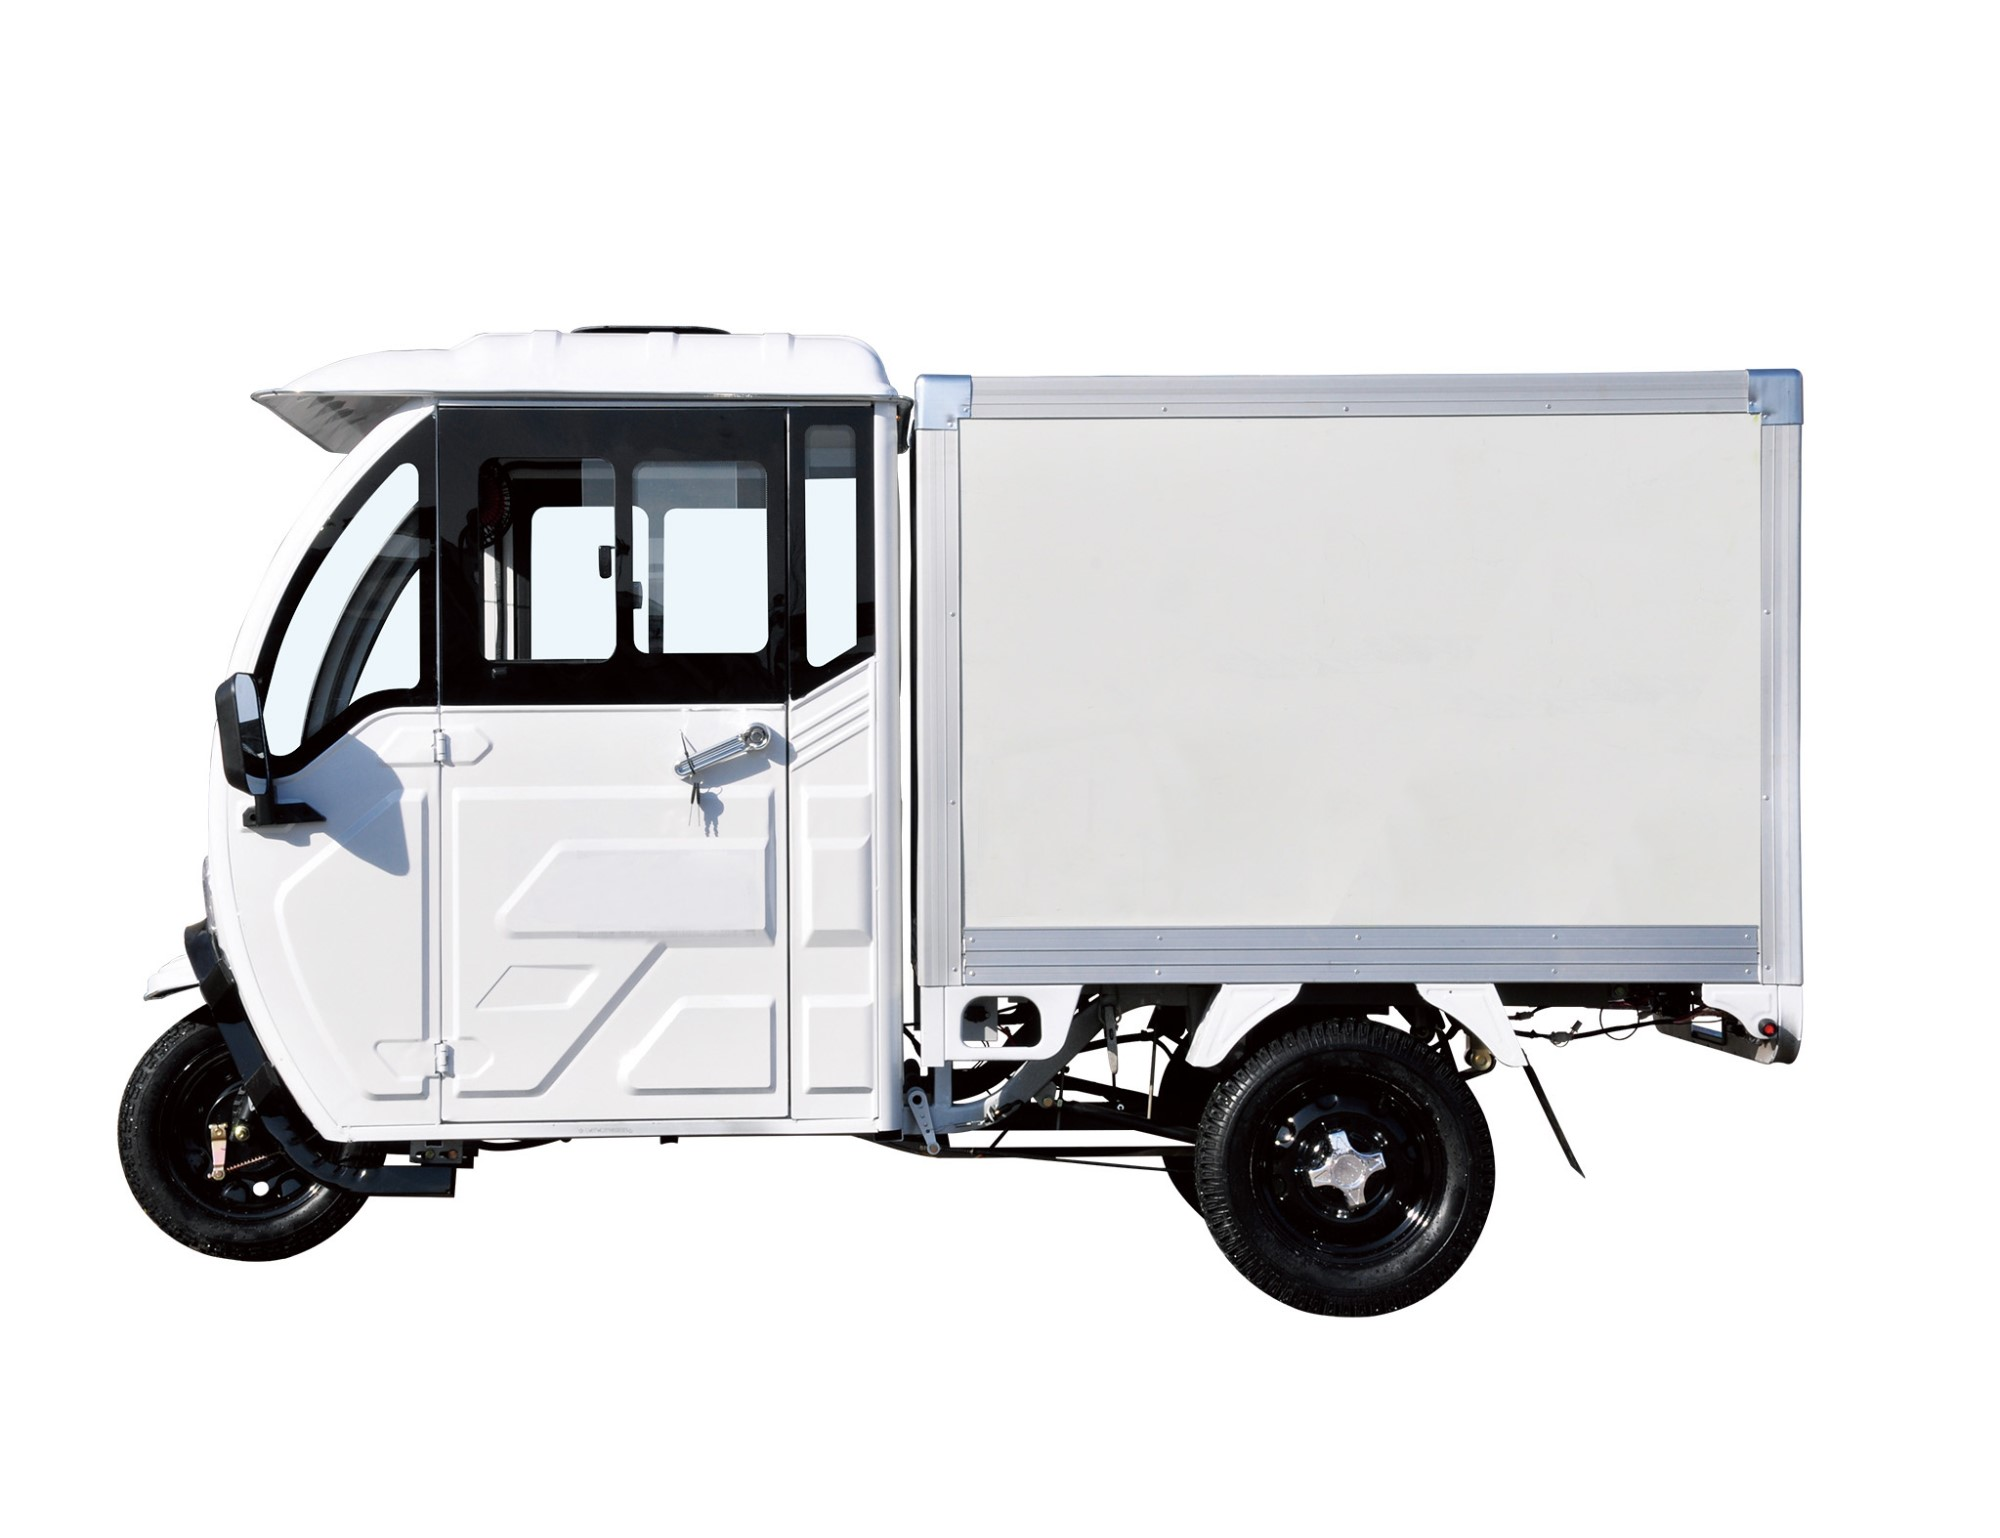 High quality Express Electric Truck With Carriage Box For Food Deliver Quotes,China Express Electric Truck With Carriage Box For Food Deliver Factory,Express Electric Truck With Carriage Box For Food Deliver Purchasing